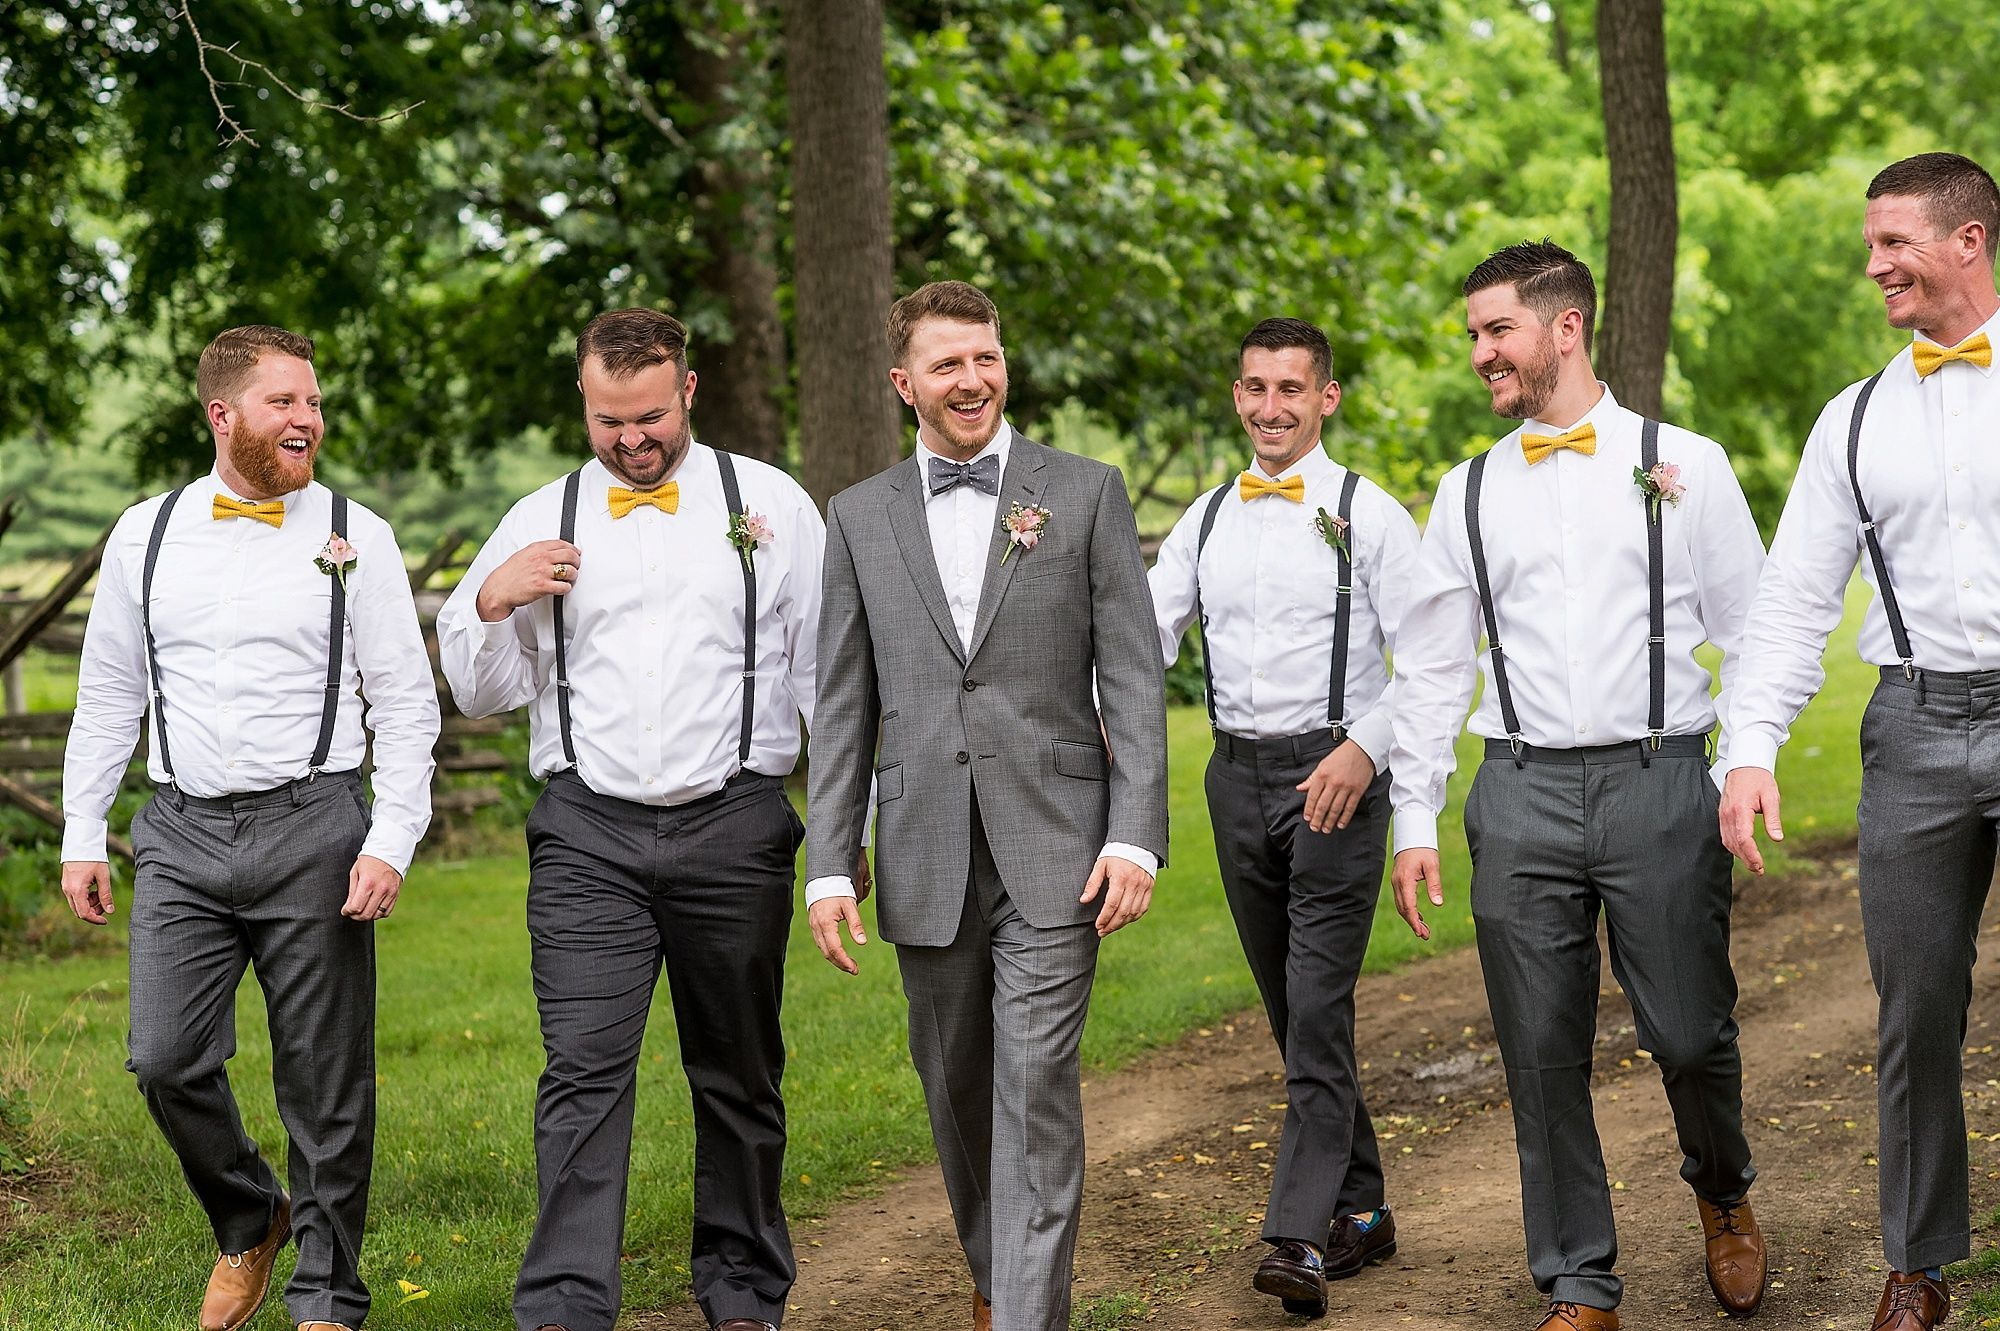 Groomsmen Suspenders And Yellow Bow Ties Groomsmen Attire Suspenders Groomsmen Suspenders Suspenders Wedding Groomsmen